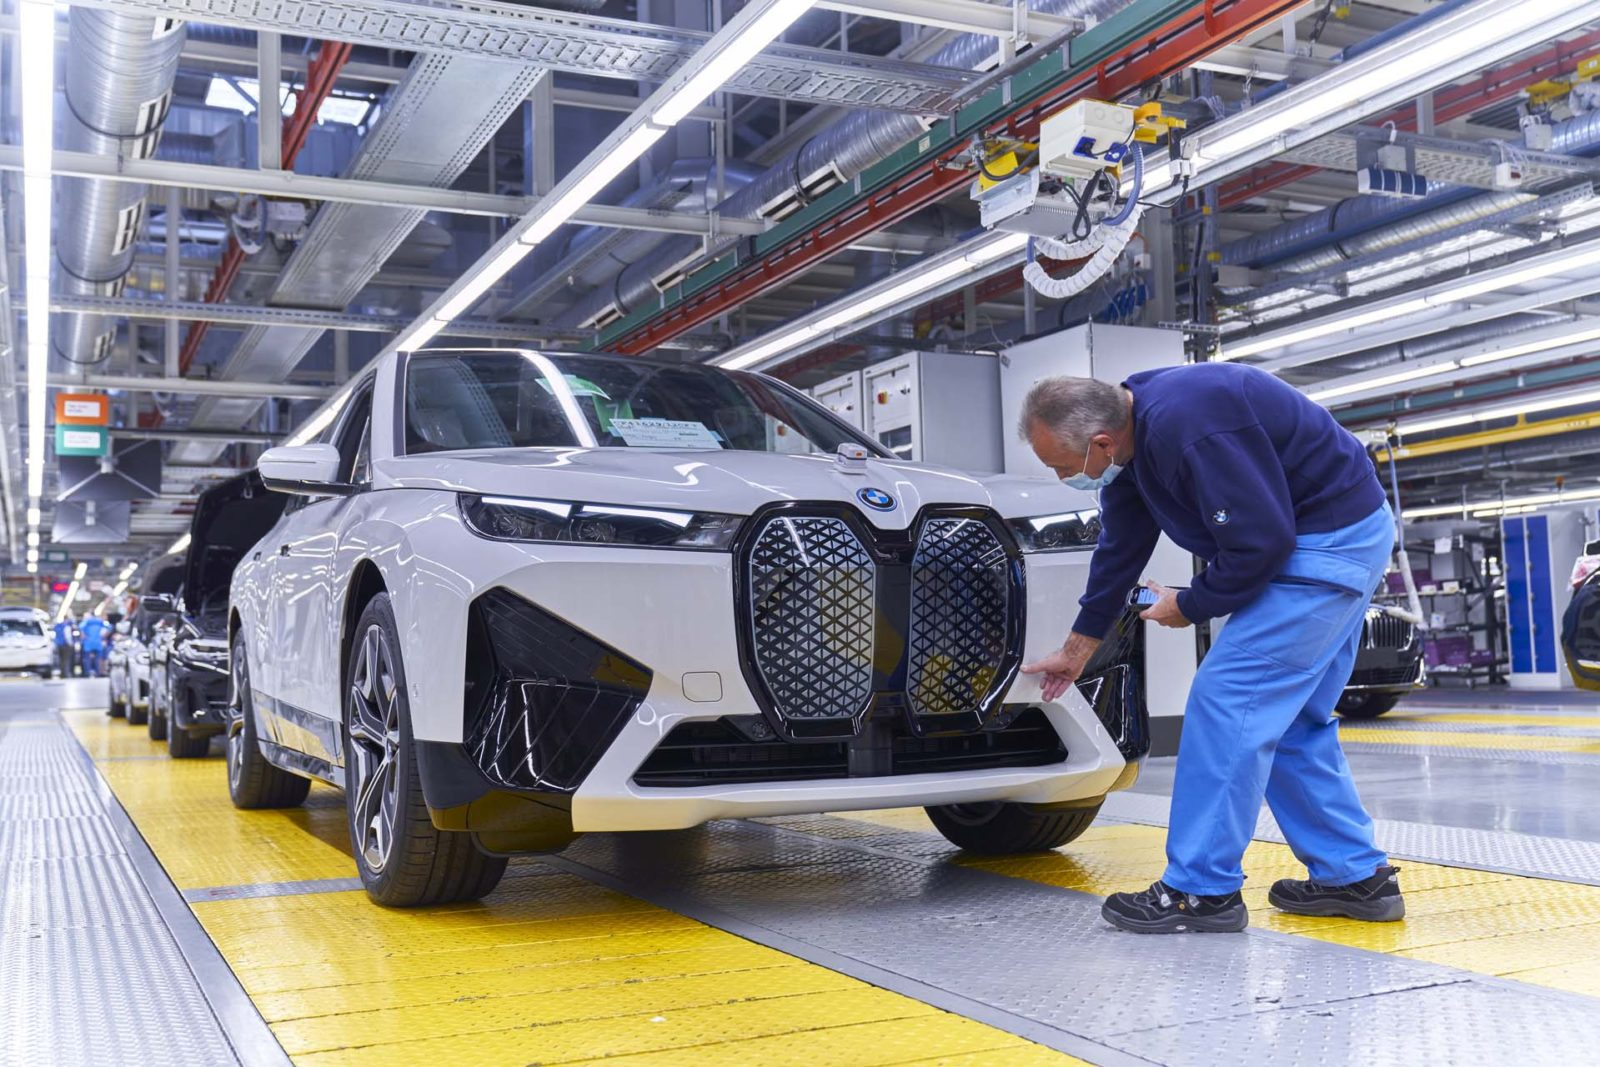 bmw-promises-prototype-solid-state-batteries-before-2025,-in-production-by-2030